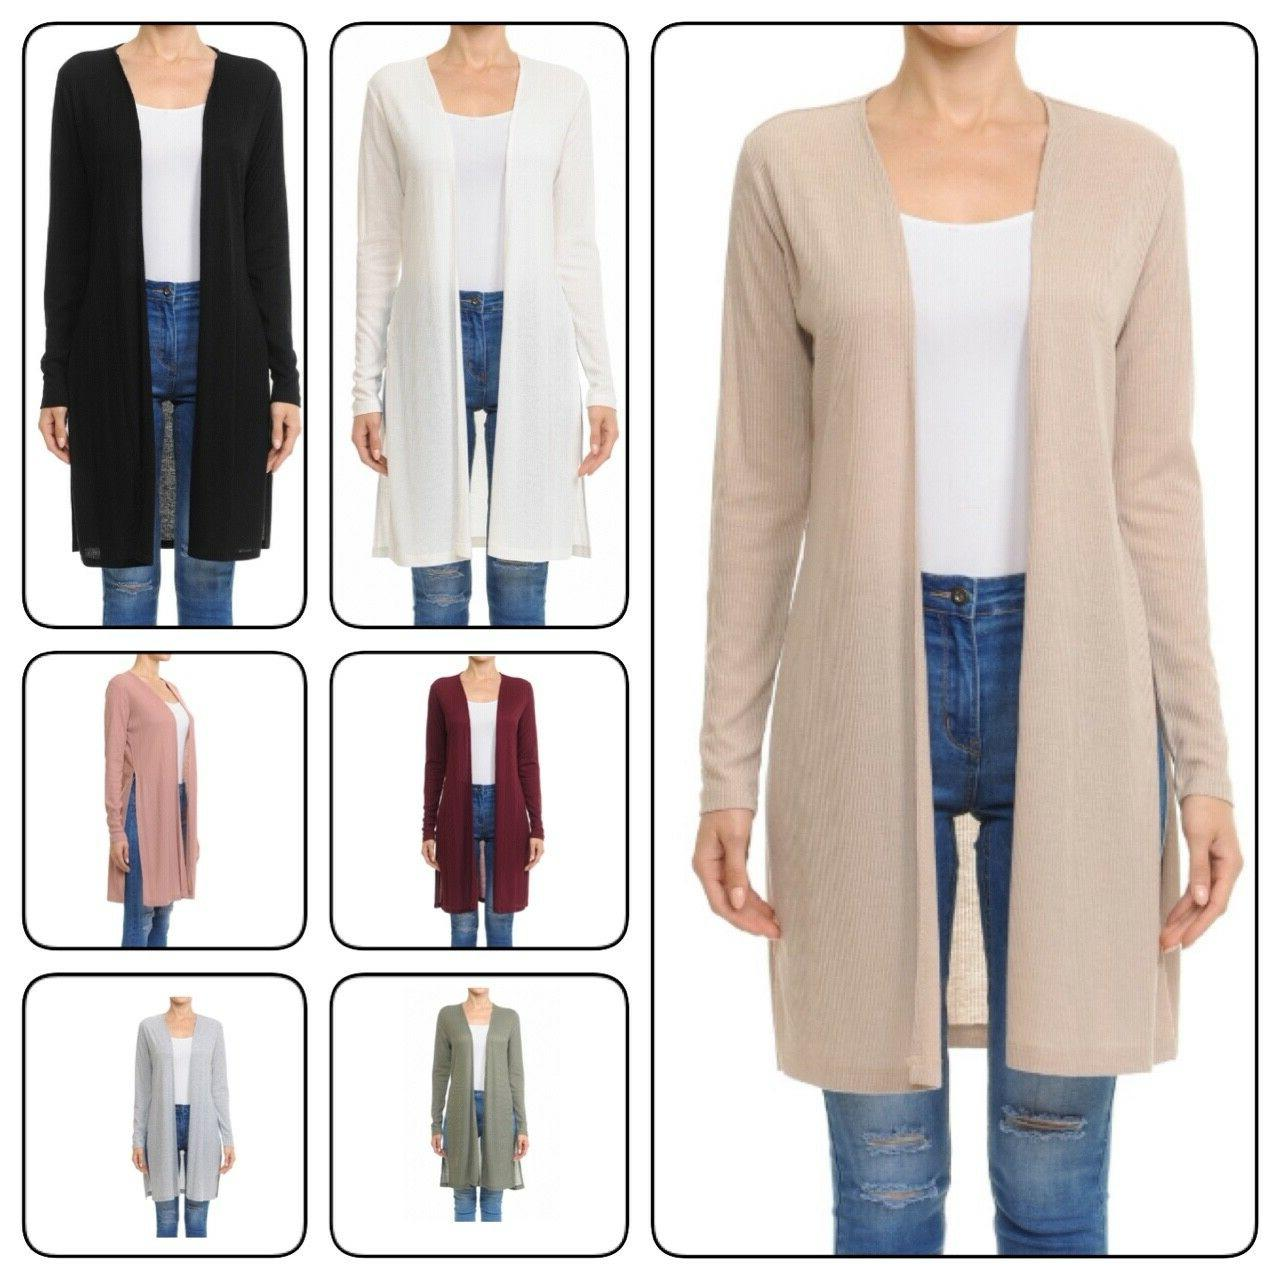 CARDIGAN WITH SIDE SLIT DETAILPlus